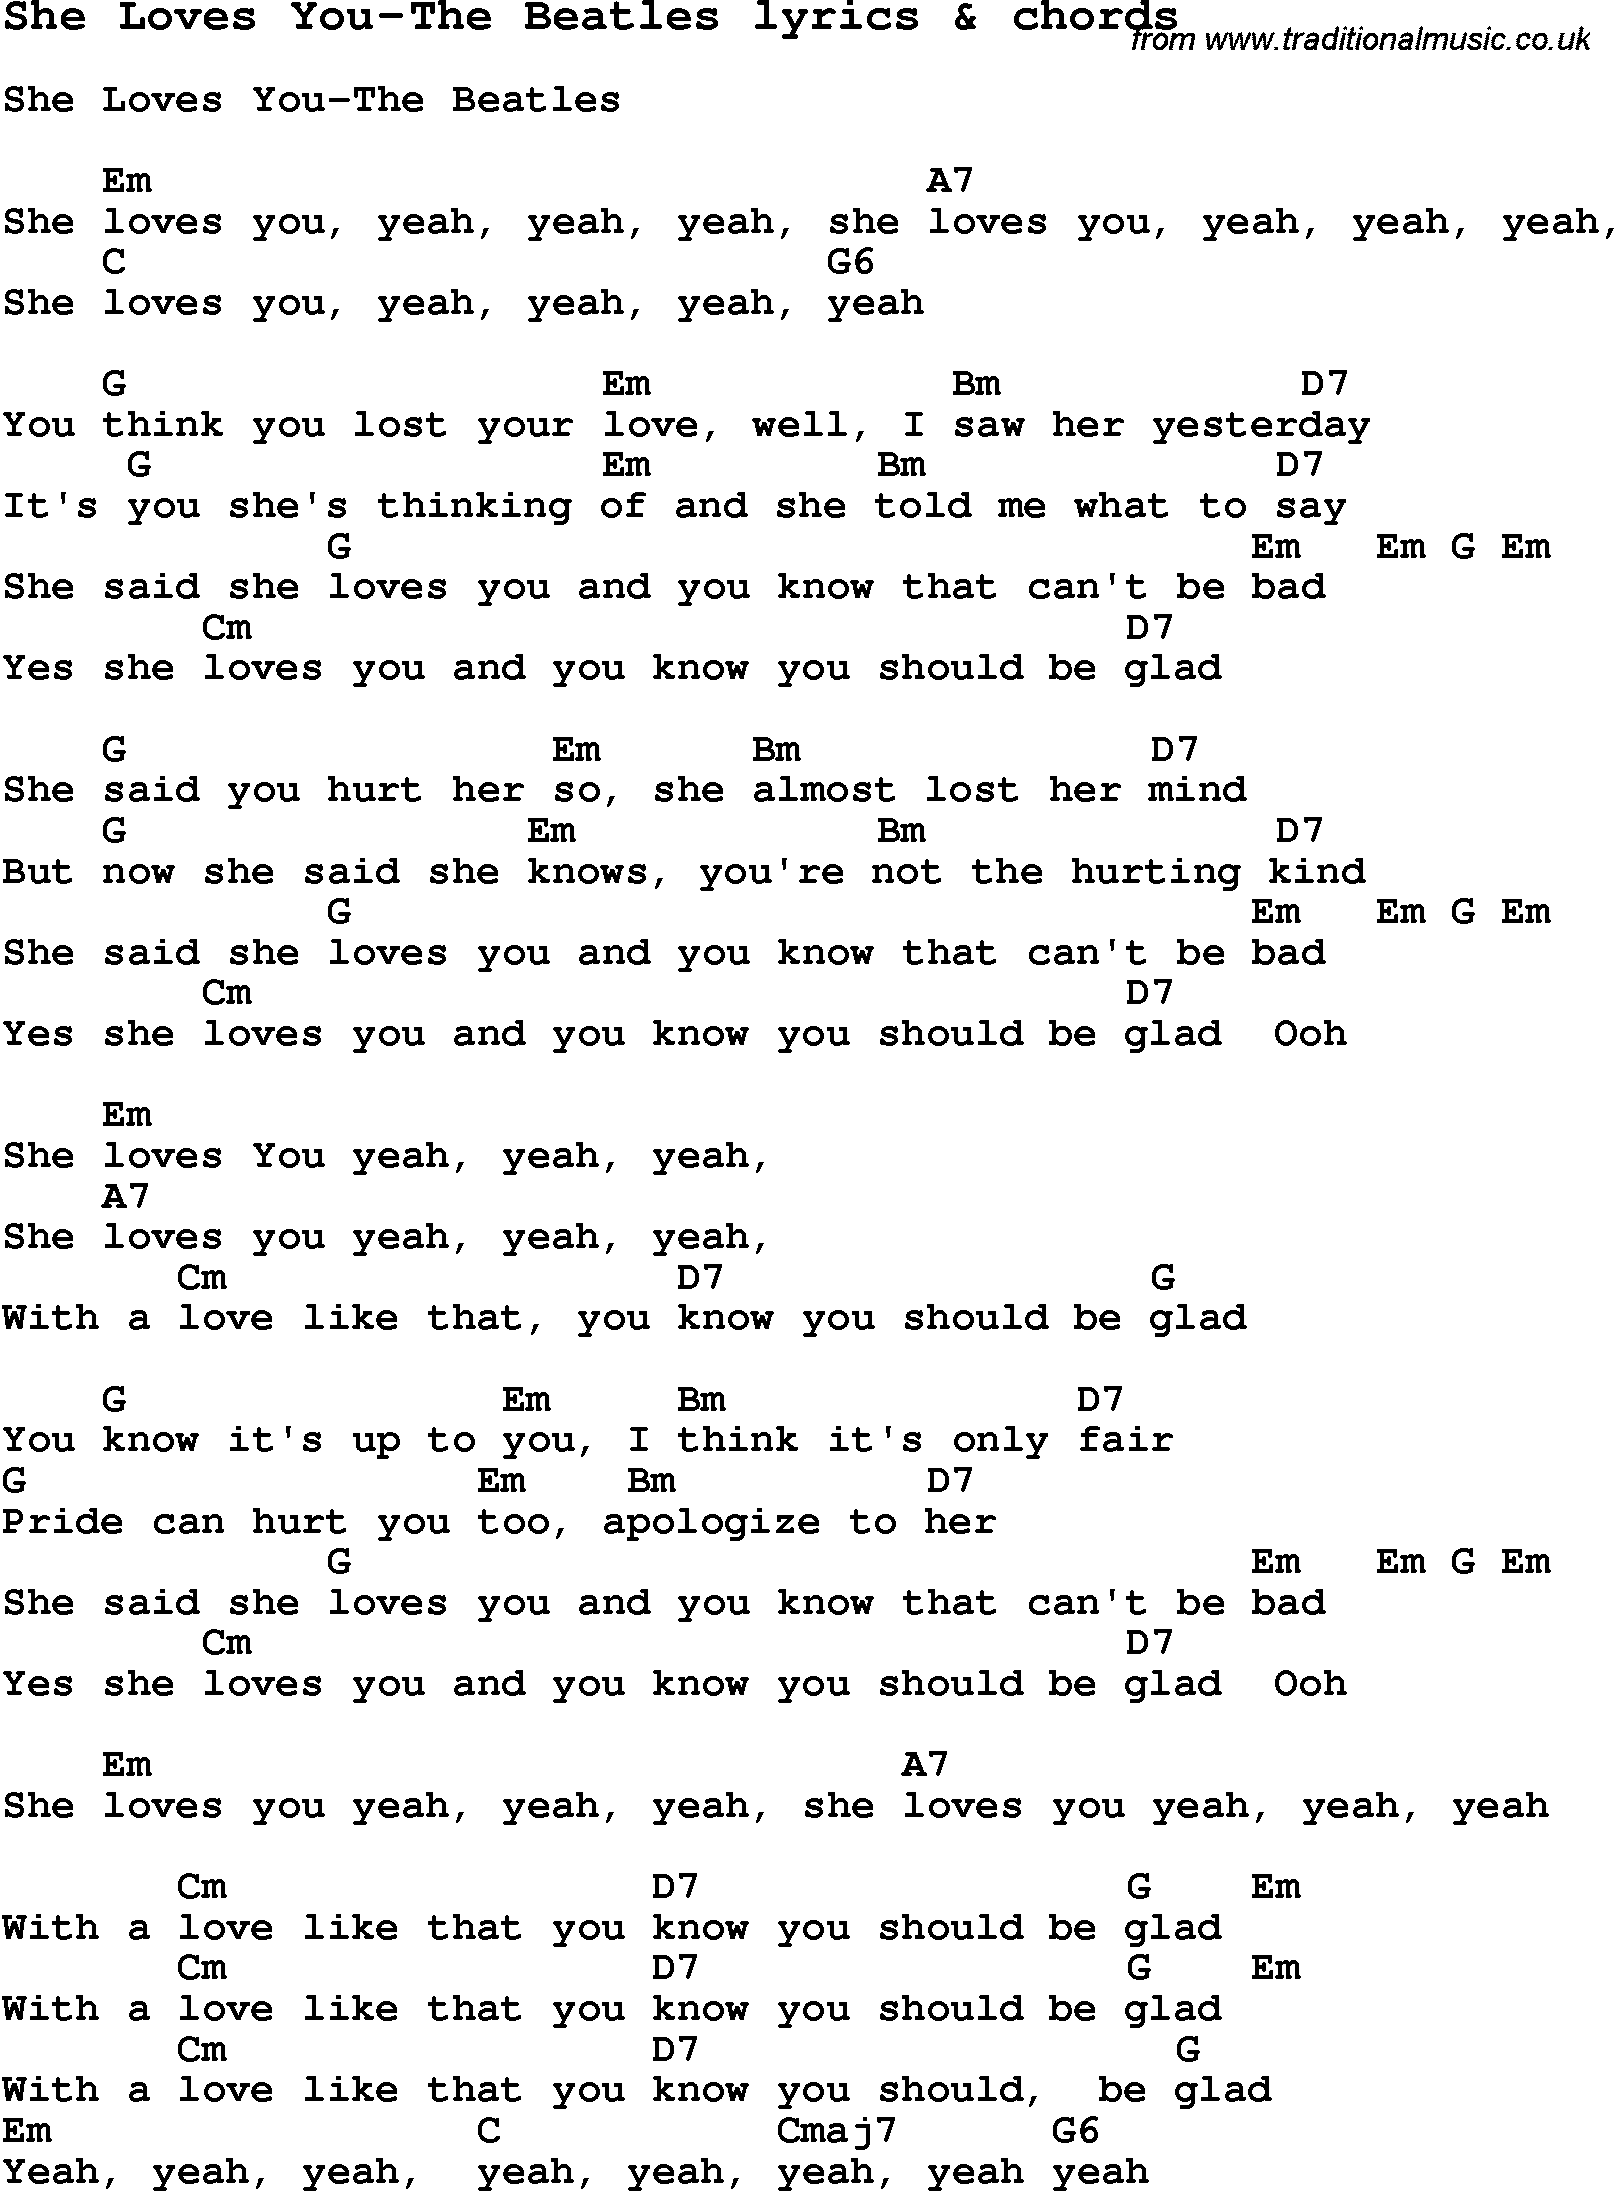 Love song lyrics forshe loves you the beatles with chords love song lyrics for she loves you the beatles with chords for ukulele hexwebz Choice Image